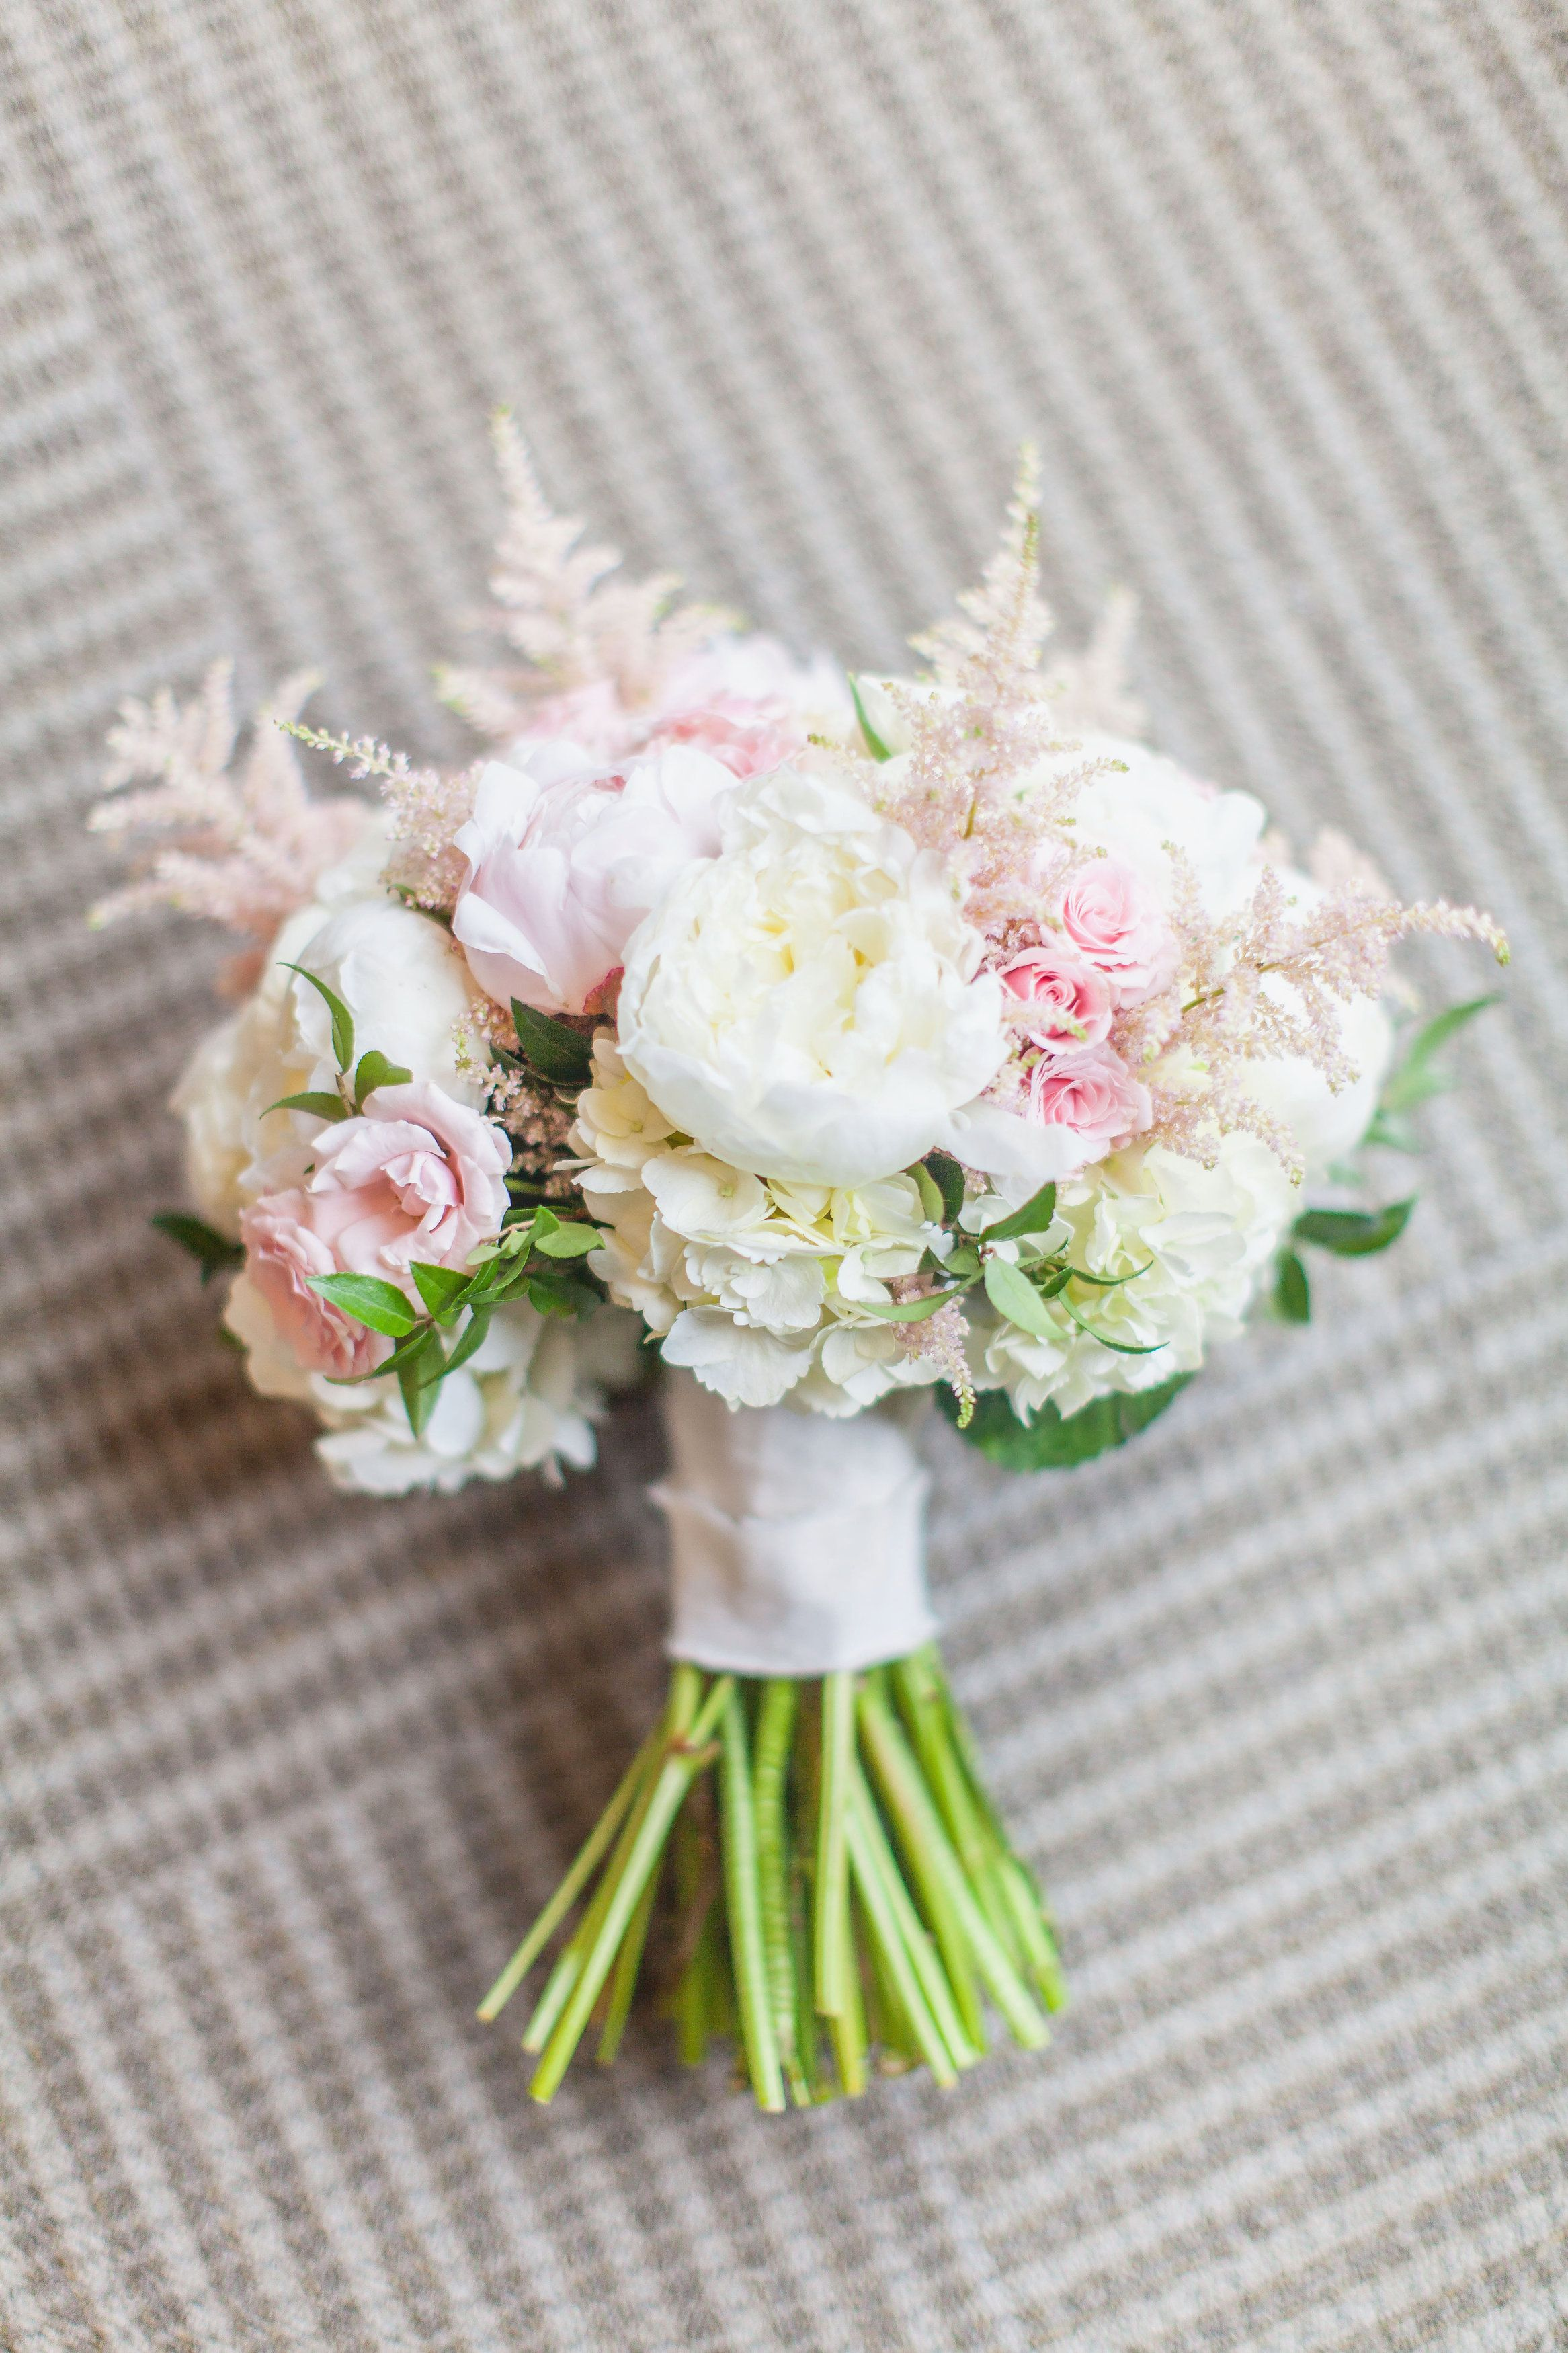 Light Pink And Gold Bedroom Decor: Blush And Ivory Bridal Bouquet. White Peonies, Light Pink